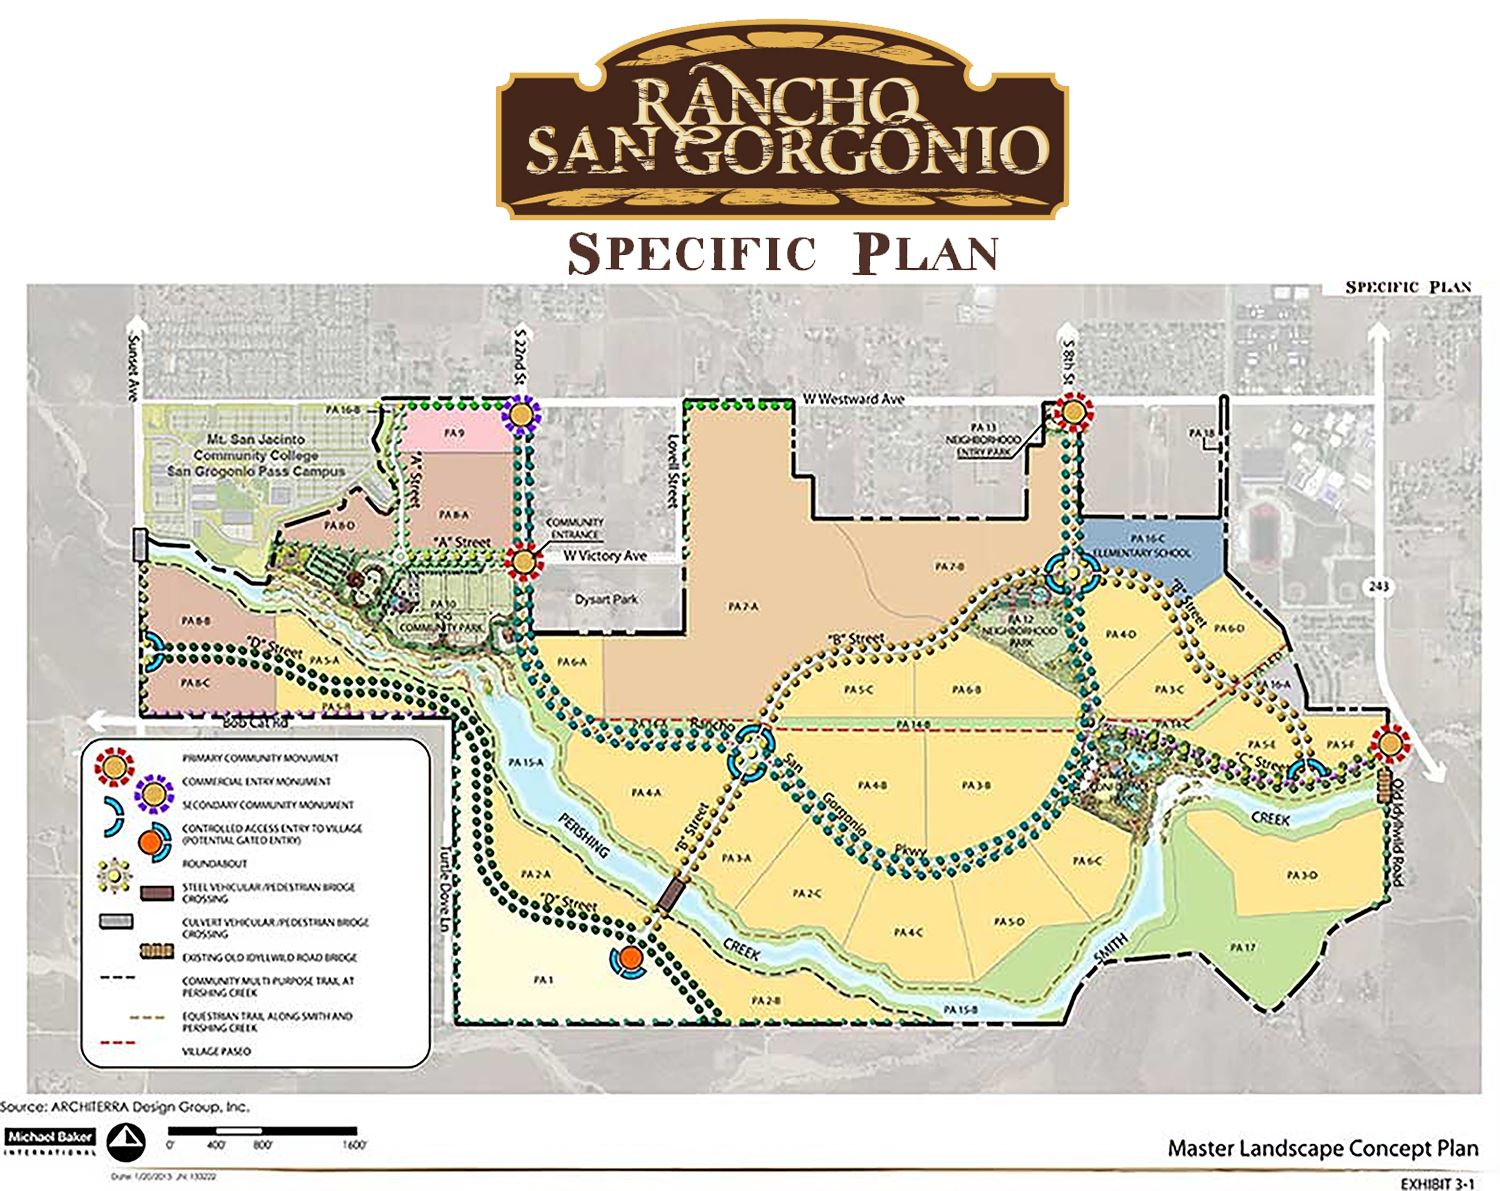 Rancho San Gorgonio Specific Plan